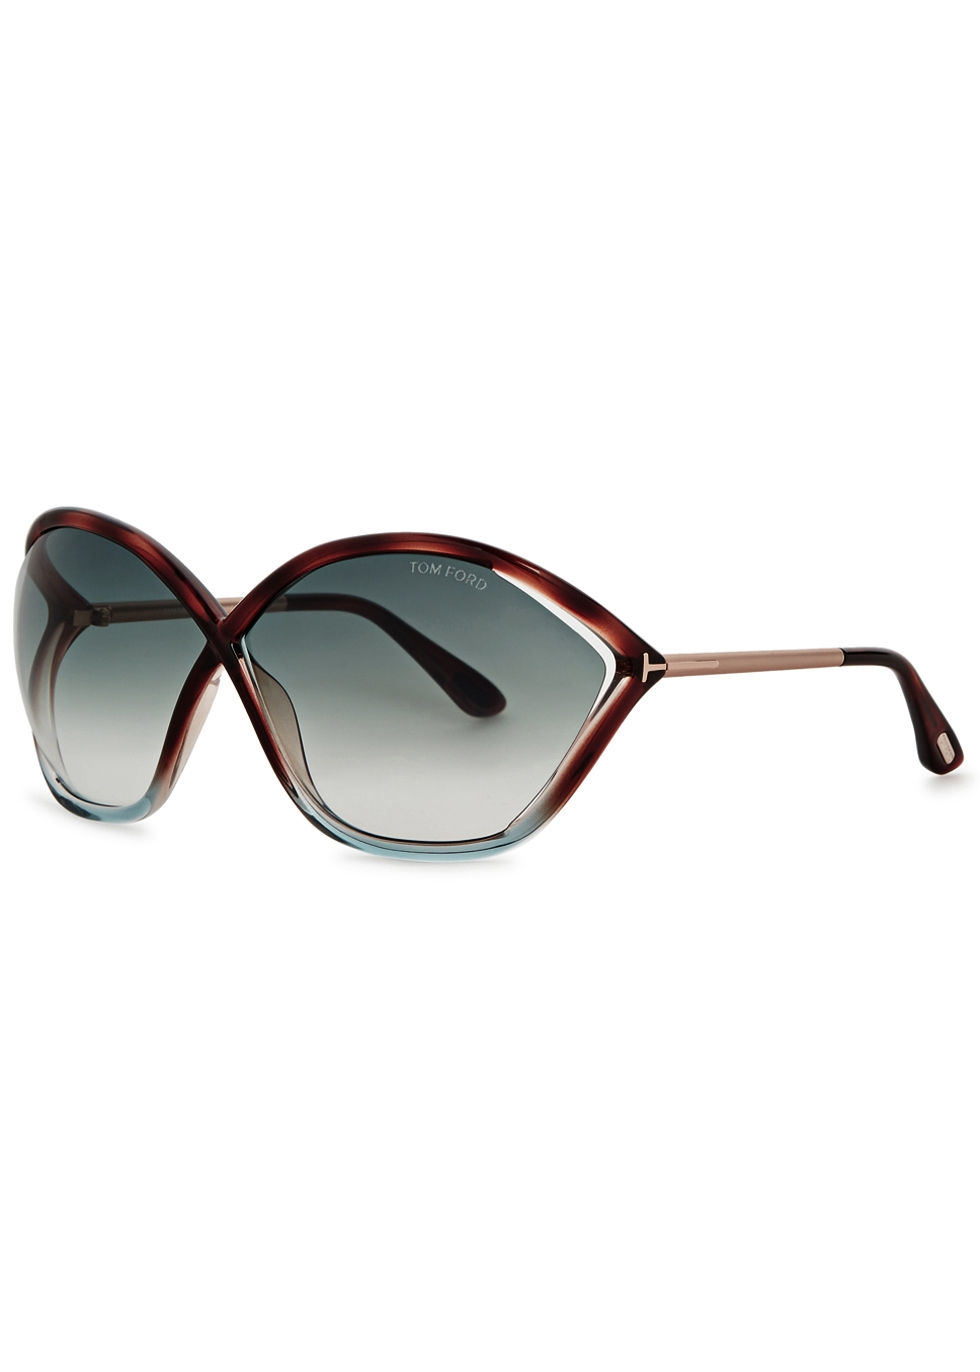 Bella tortoiseshell oversized sunglasses - Tom Ford Eyewear